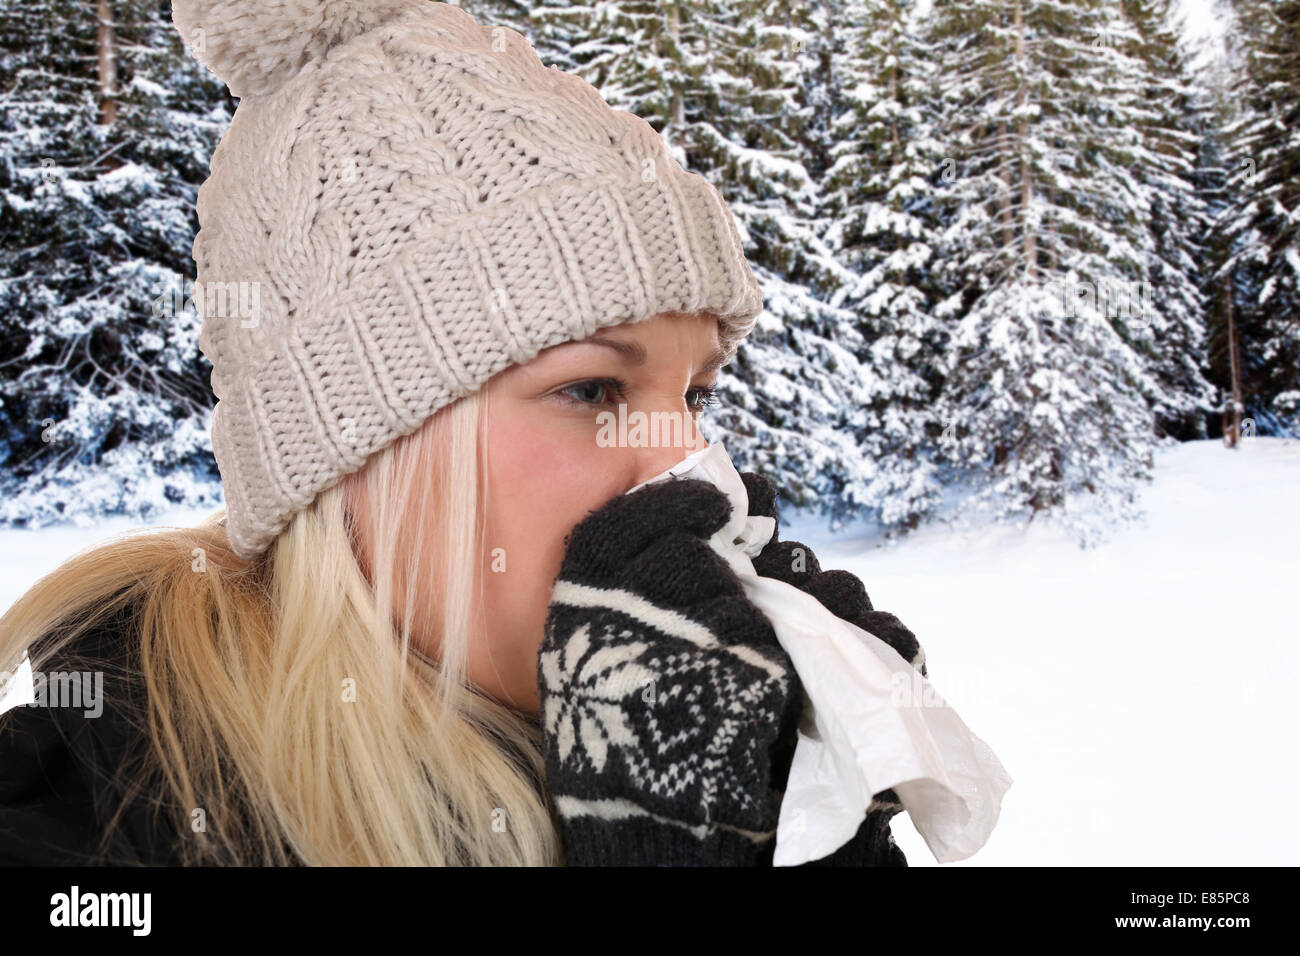 Young woman with a cold and flu virus sneezing into a tissue is ill outdoors - Stock Image